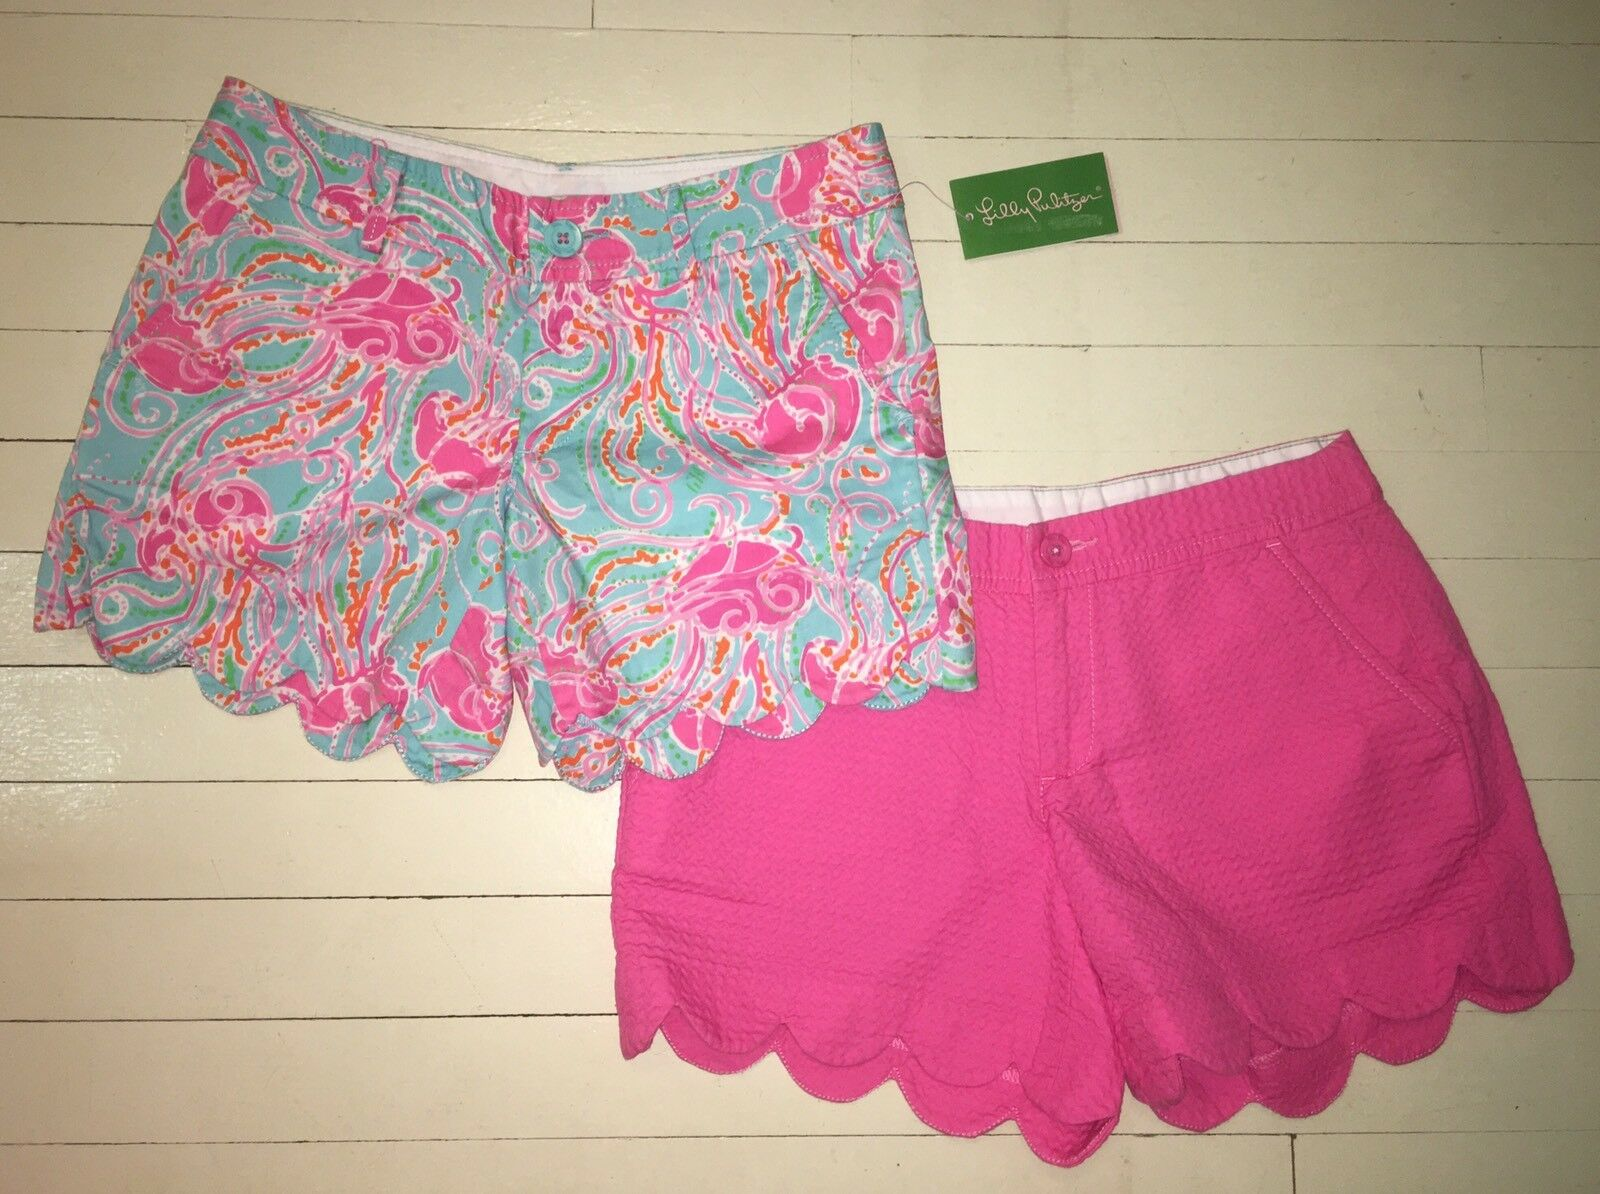 NEW Lilly Pulitzer Jellies Be Jammin Buttercup Shorts sz 00 +Bonus Pink Pair